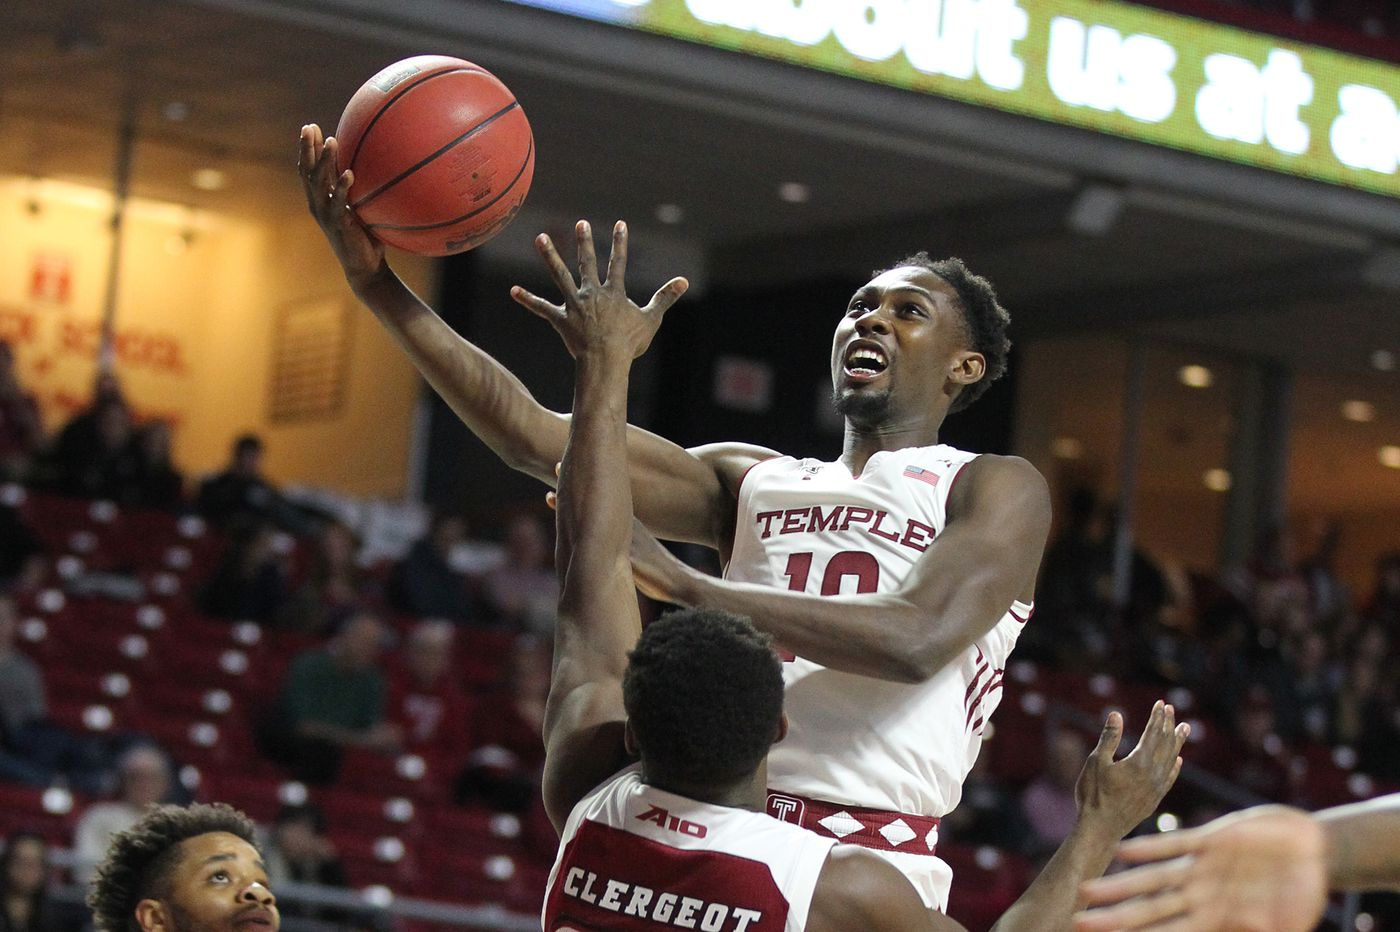 Shizz Alston leads late rally for Temple to knock off Wichita State on road